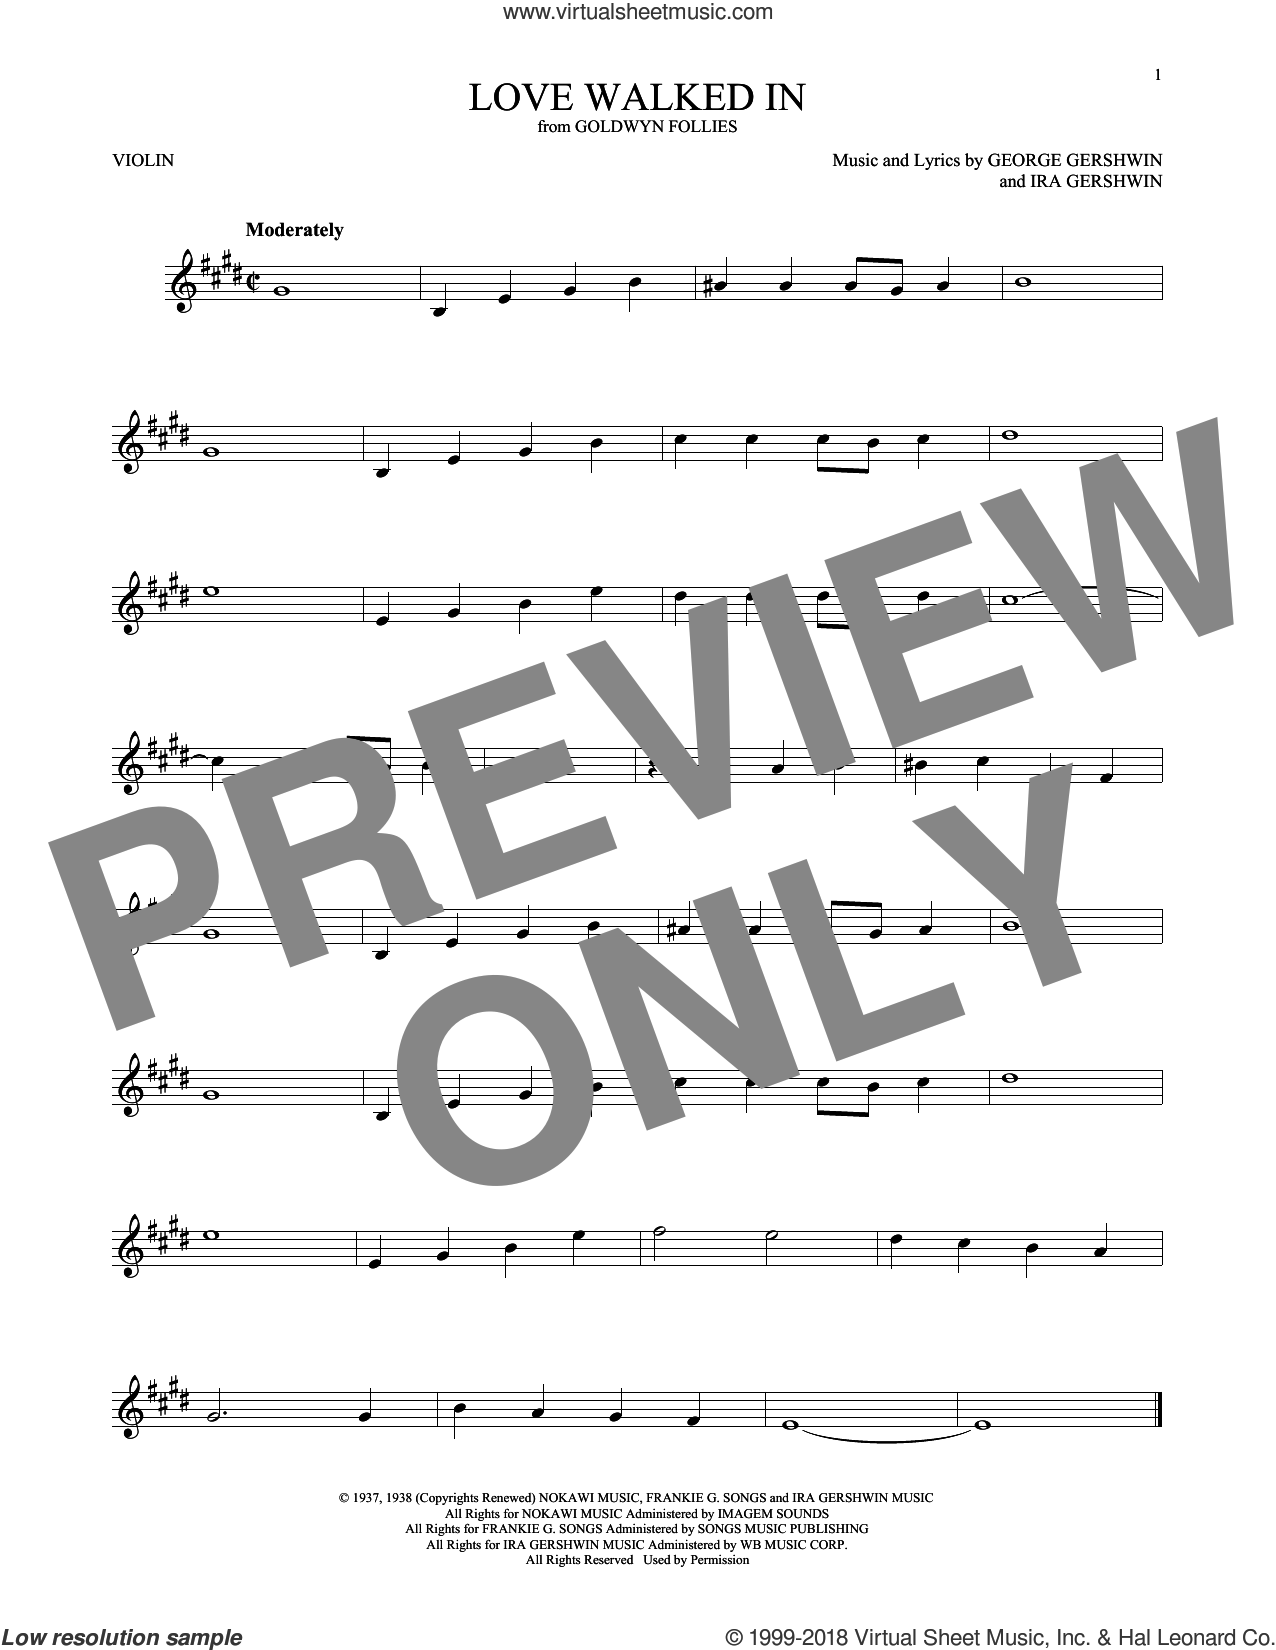 Love Walked In sheet music for violin solo by George Gershwin and Ira Gershwin, intermediate skill level